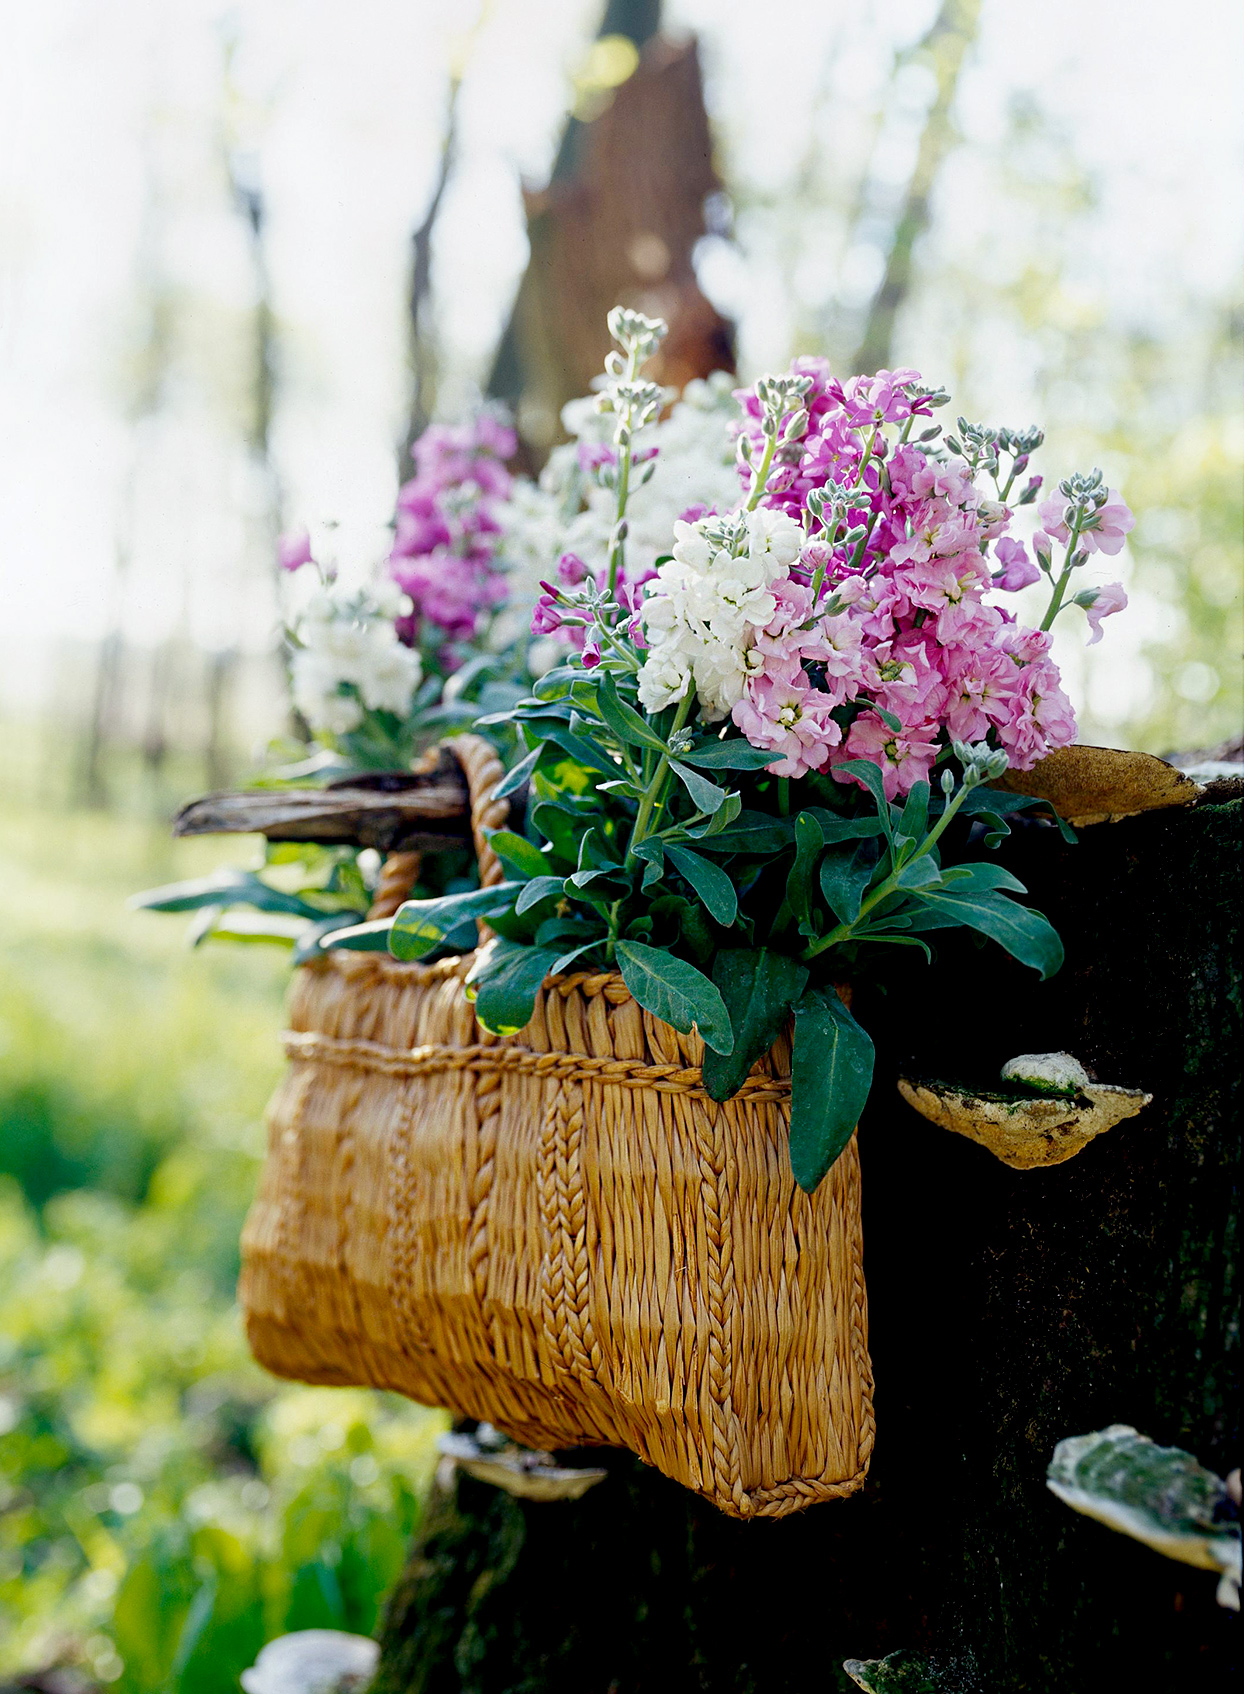 Pink and white stock flowers in woven basket